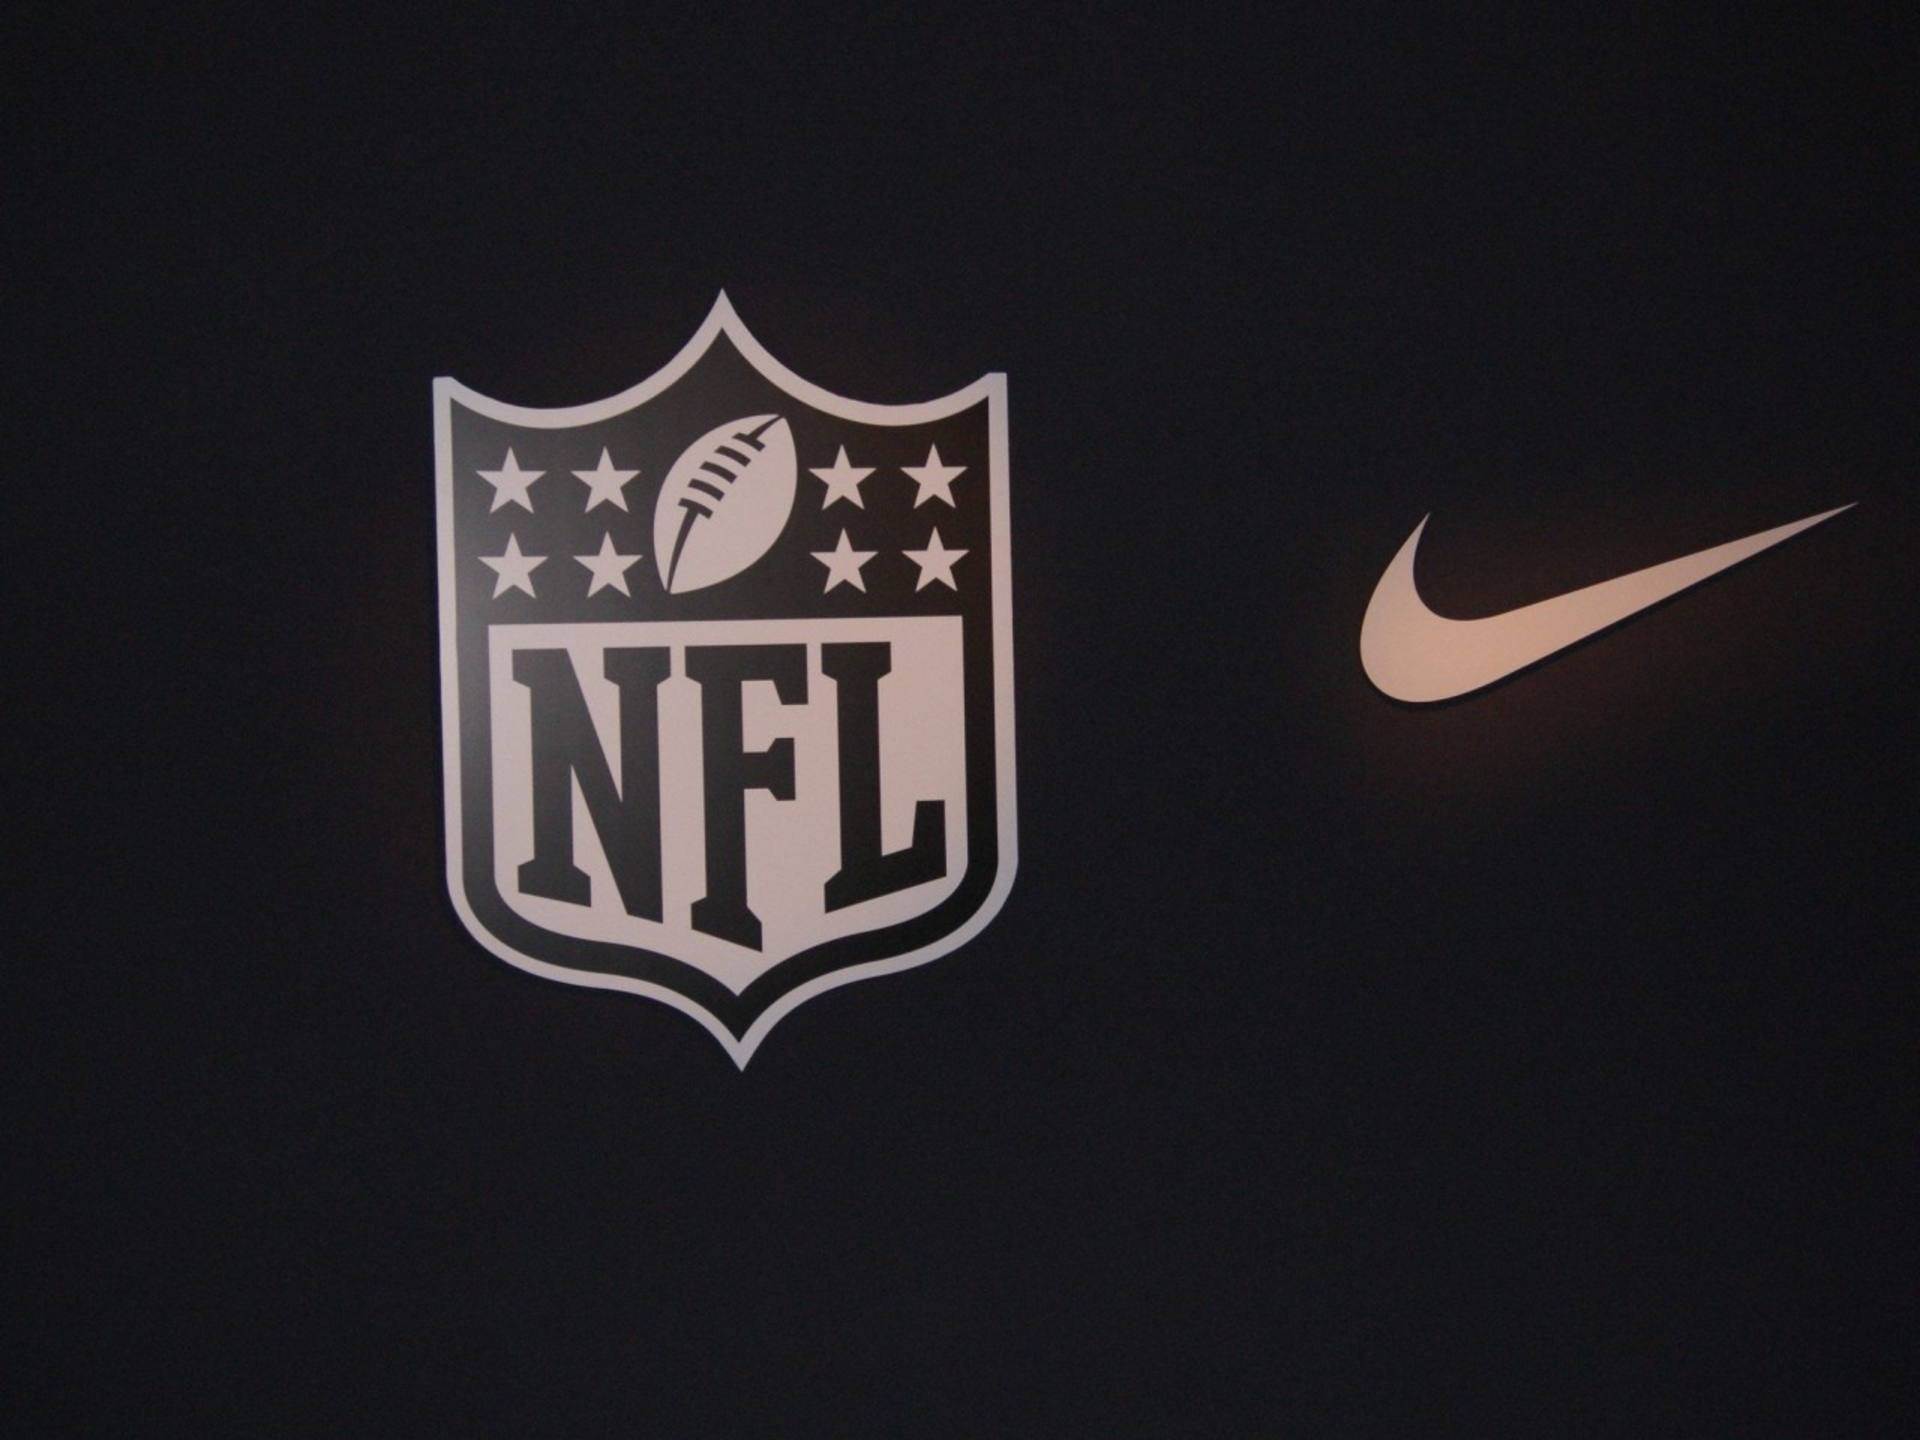 Nike Nfl Football Wallpaper wallpaper wallpaper hd 1920x1440